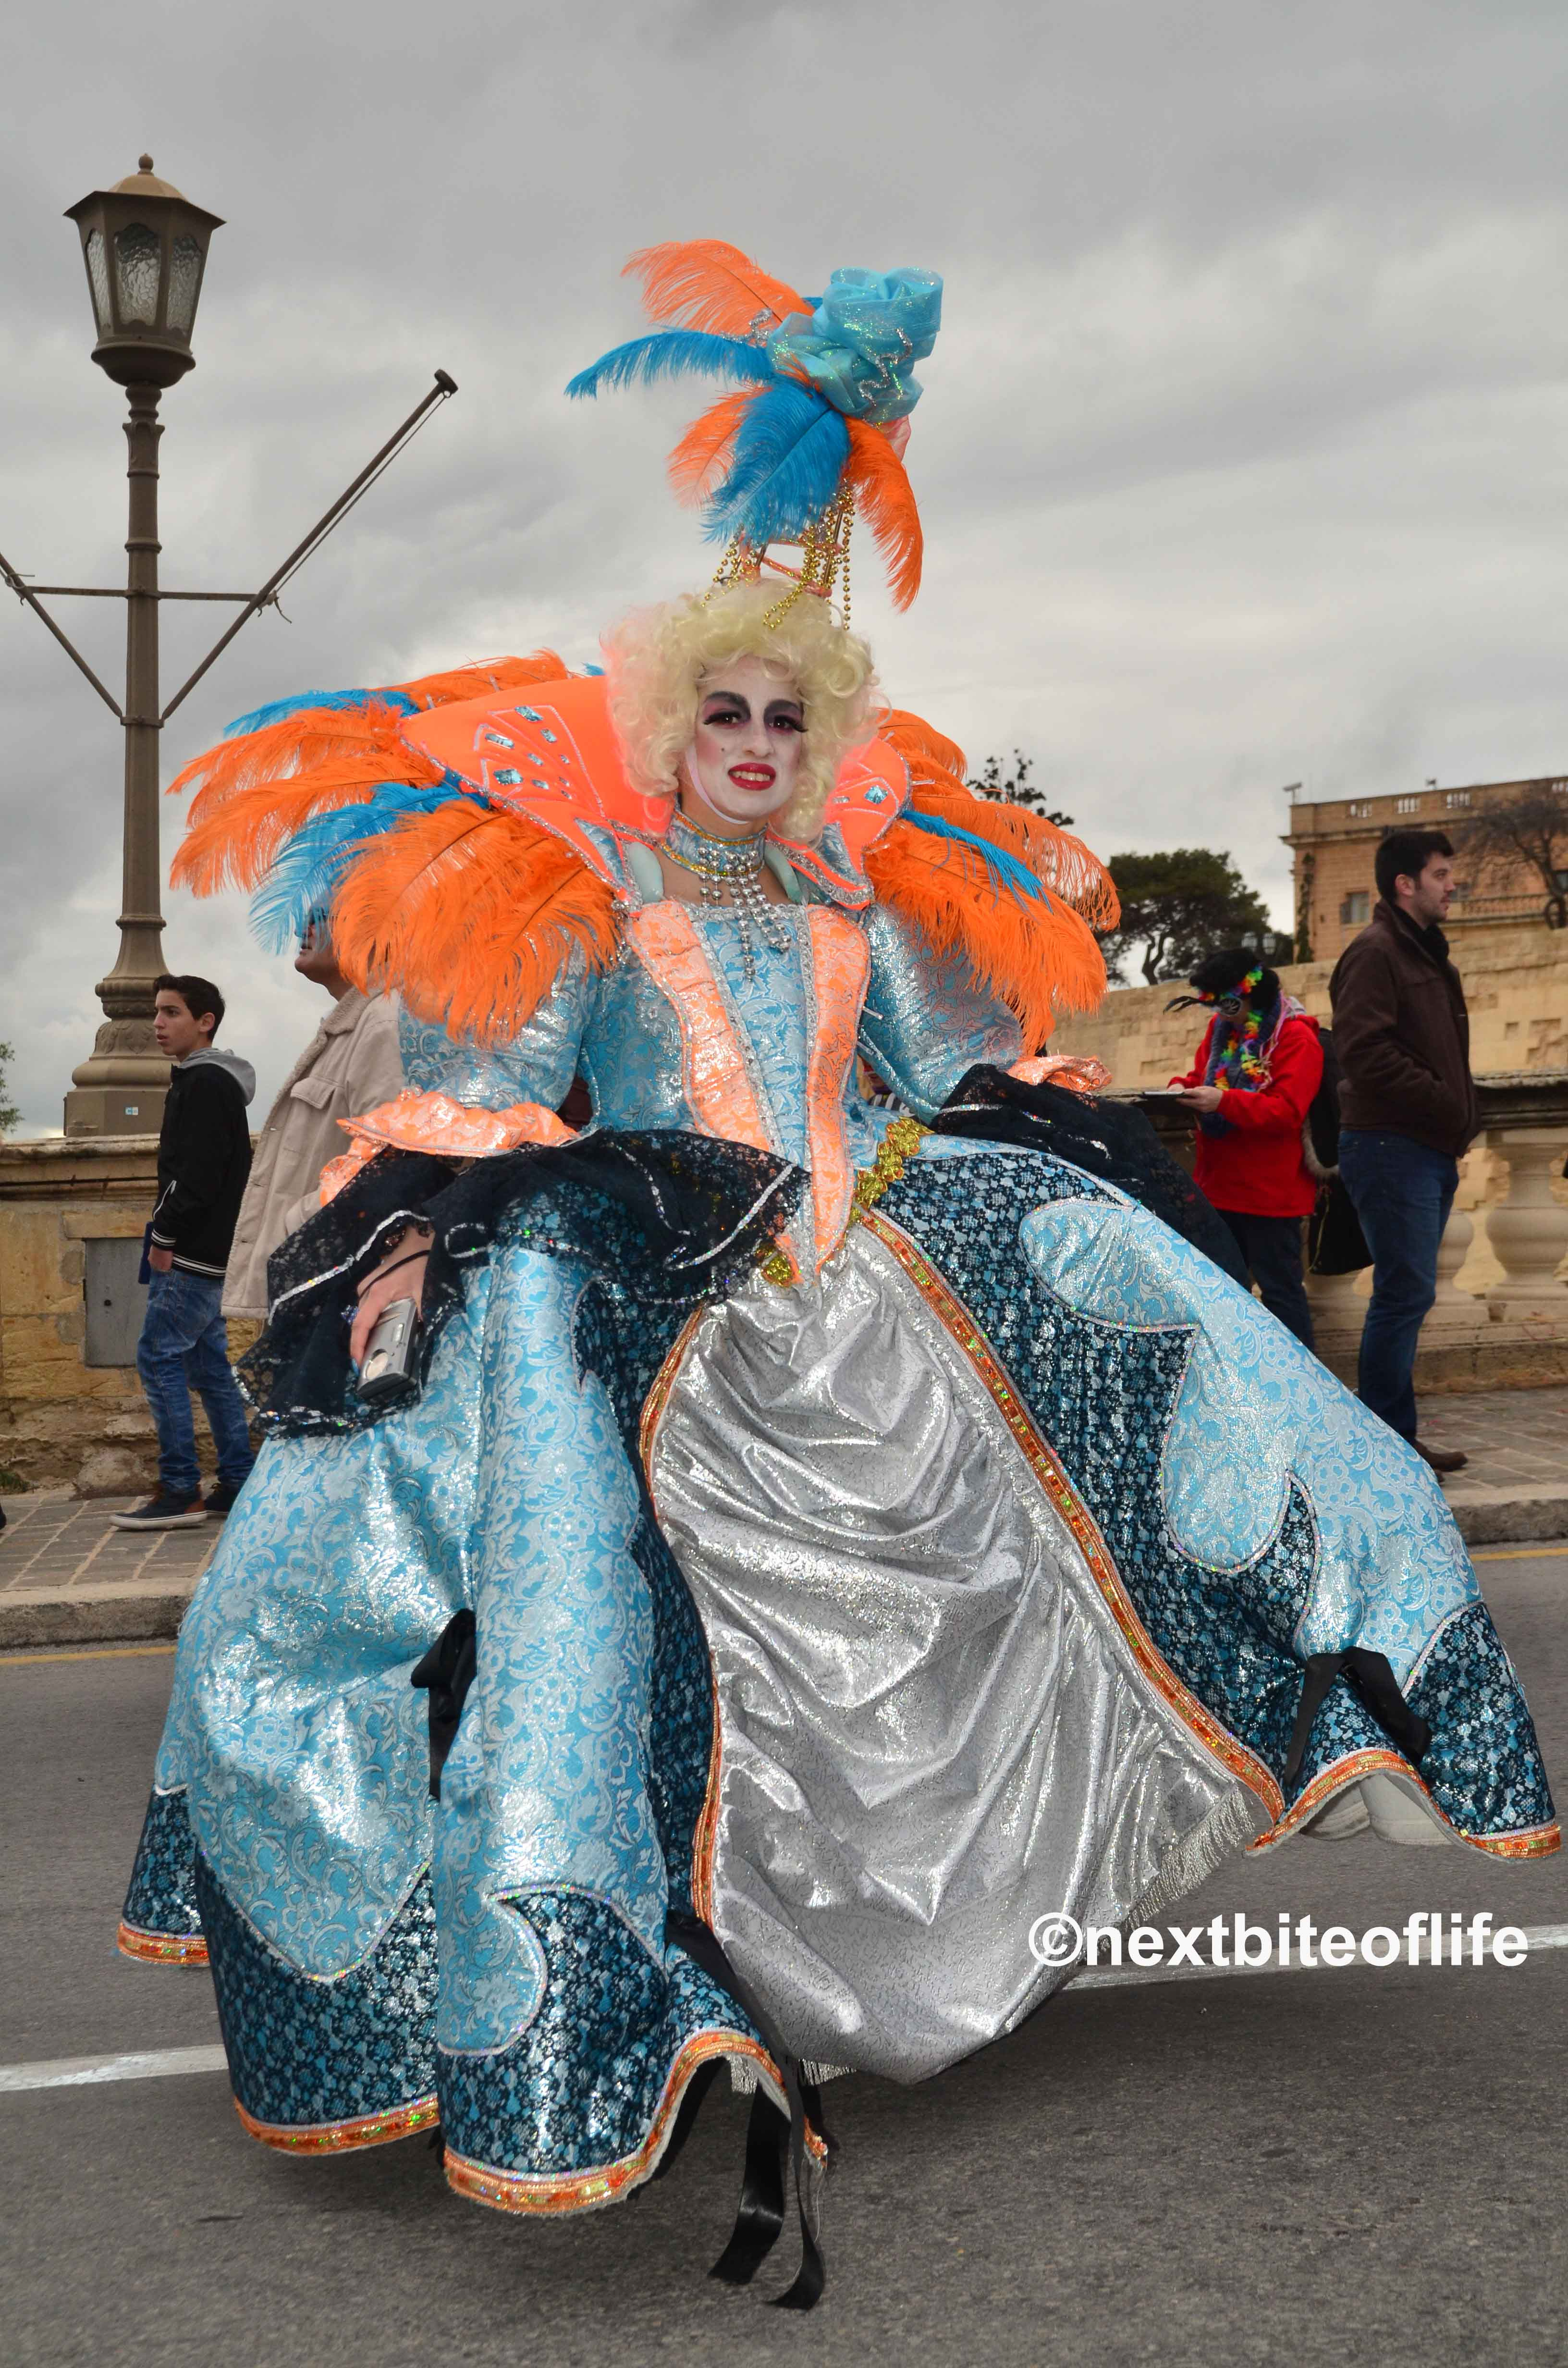 man in drag at the Malta carnival, blue dress with orange trim